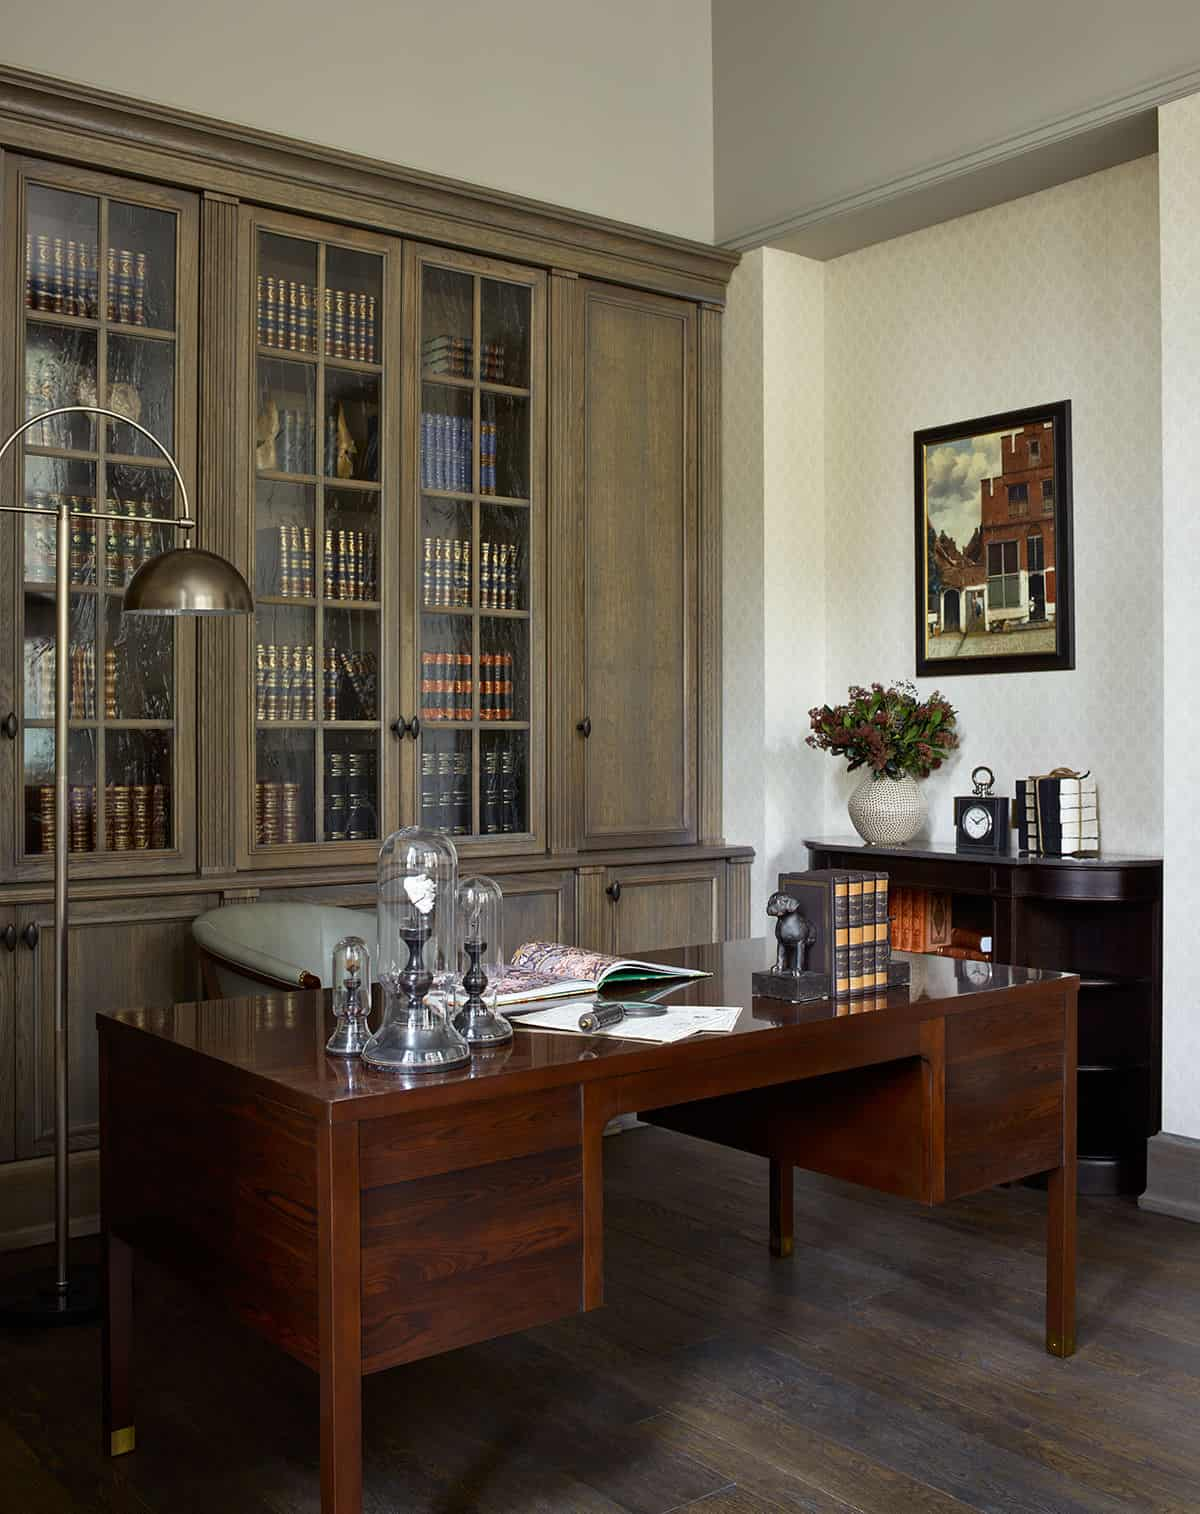 Home office featuring hardwood flooring and an elegant office desk surrounded by classy walls.